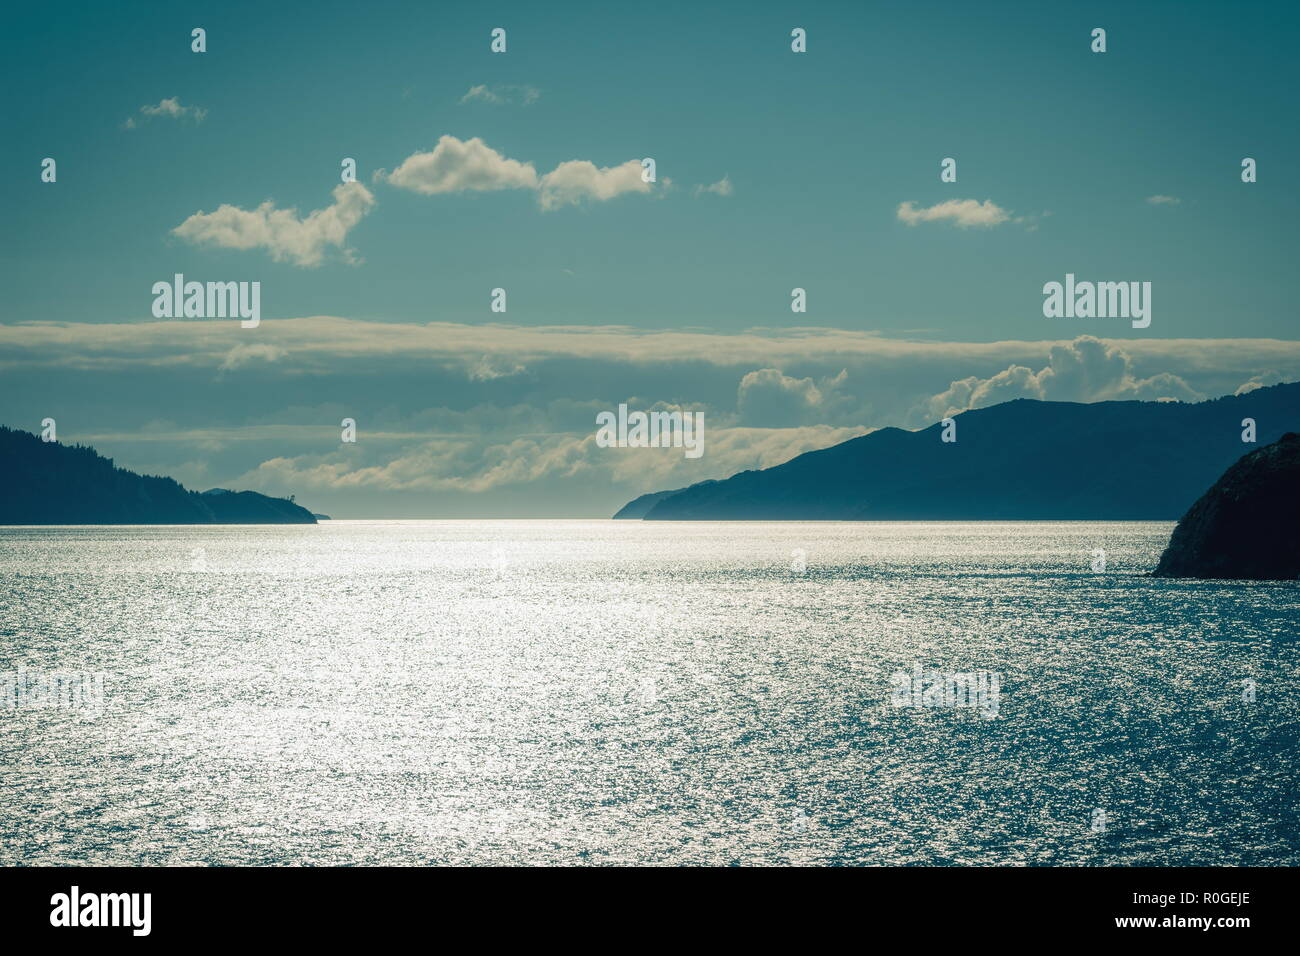 Background image of glistening water on the sea between islands of the Marlborough Sounds in New Zealand. - Stock Image